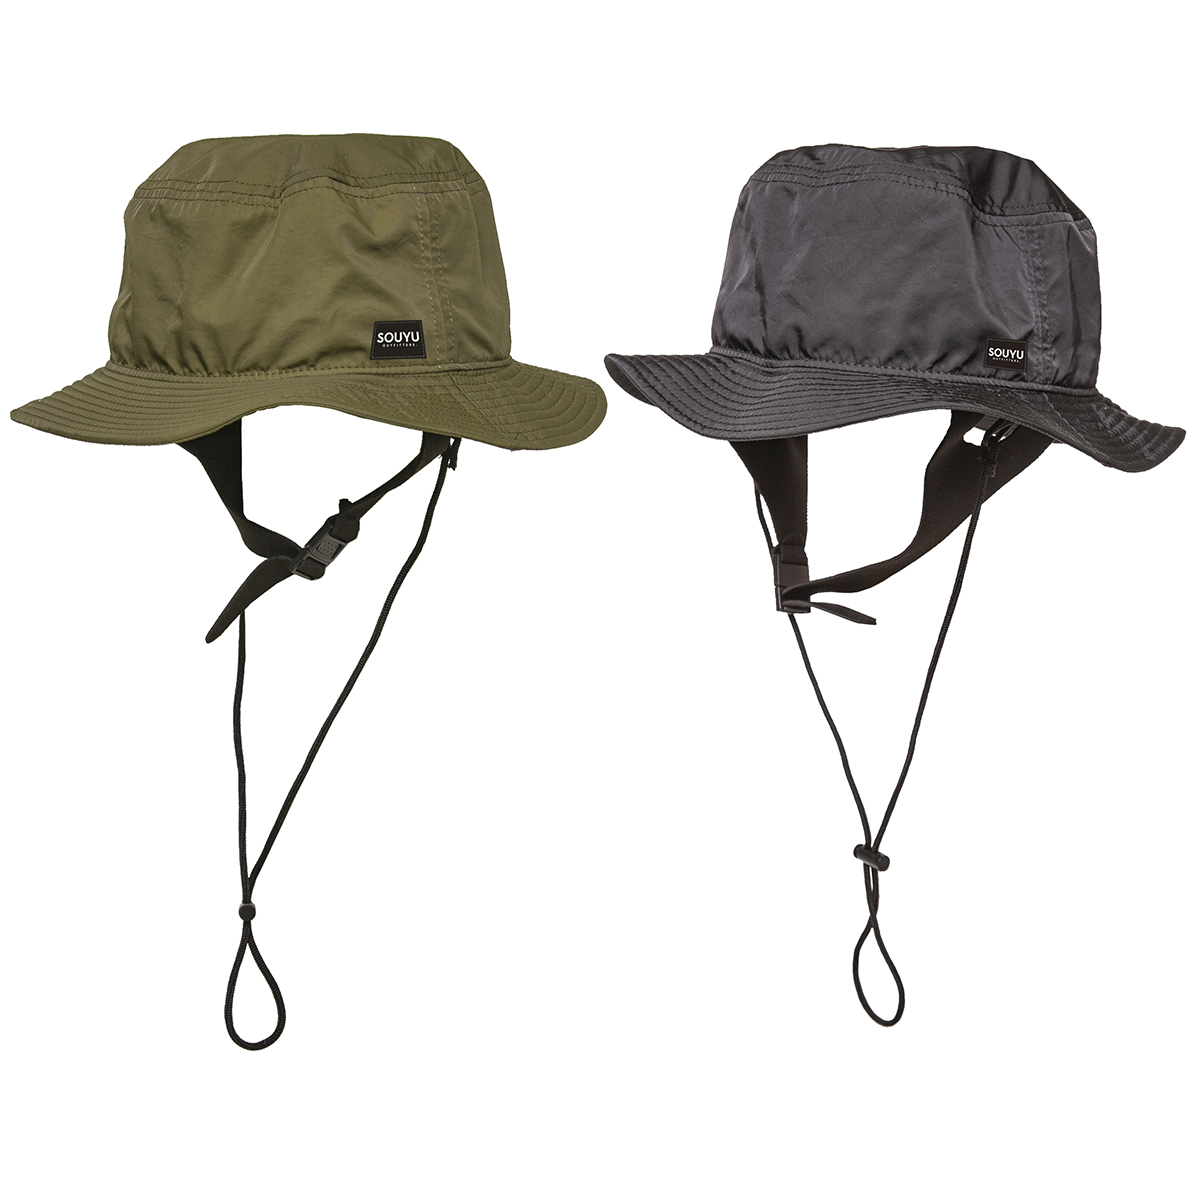 ADVENTURE HAT アドベンチャーハット Number : s20-so-13 Fabric : Polyester 100% Size : FREE Color:Olive,Black Price : ¥5,800